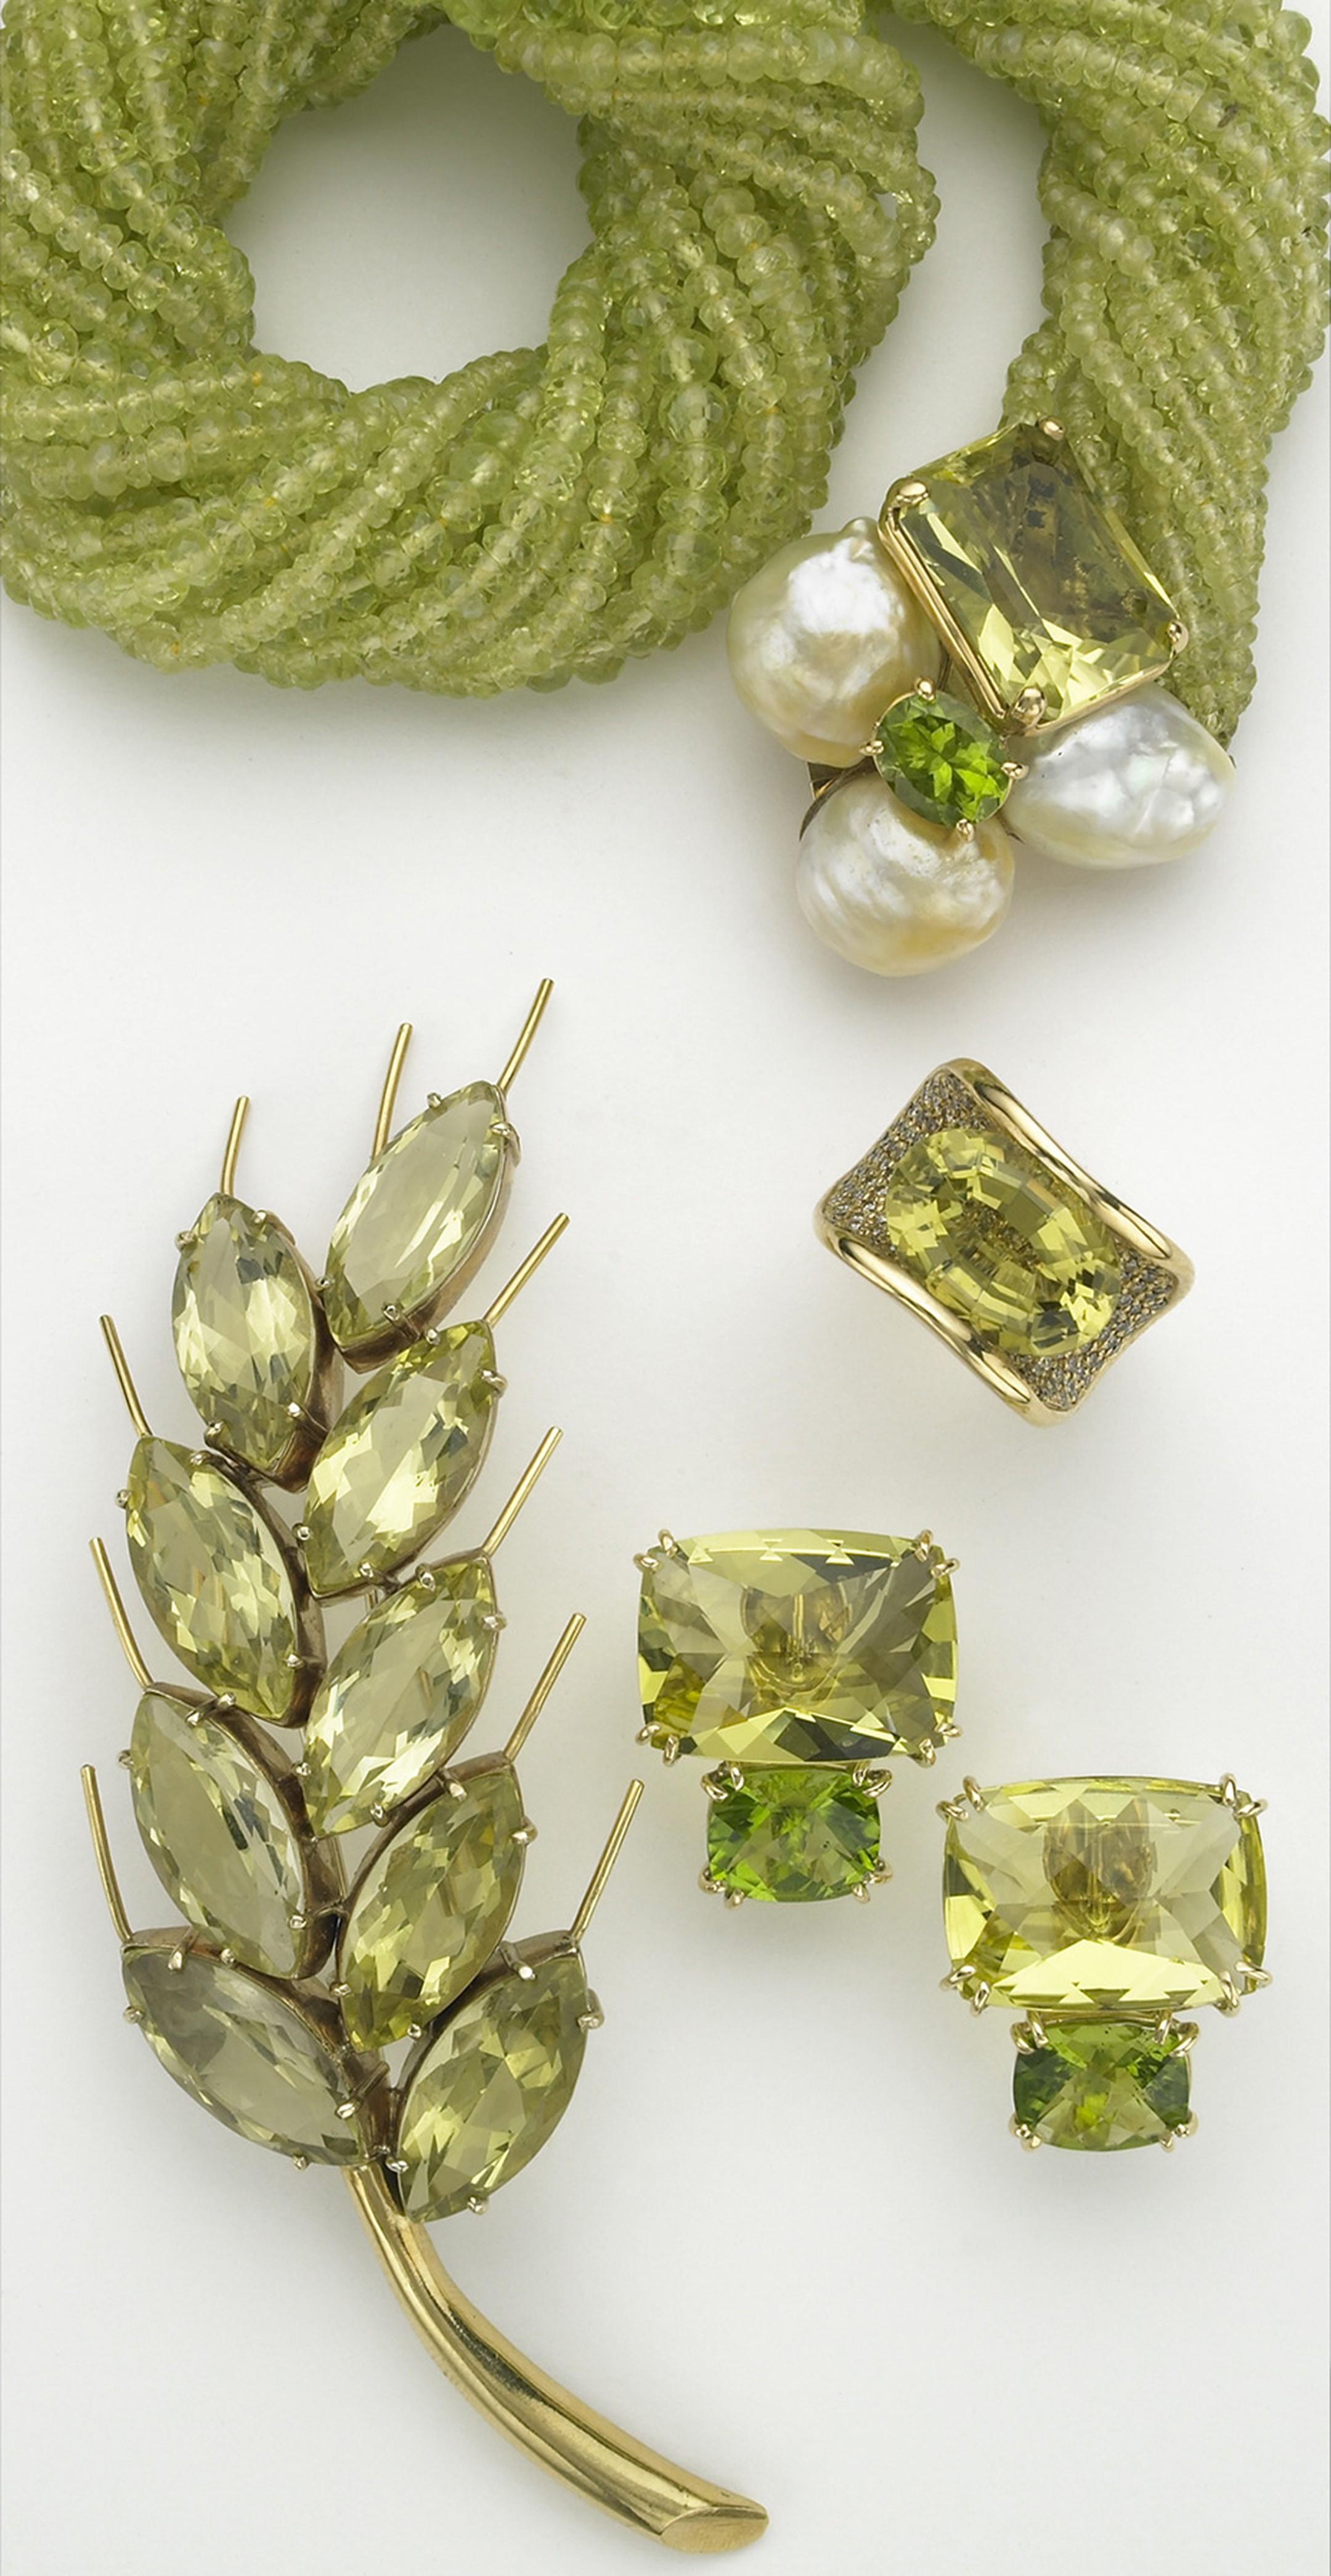 Sorab & Roshi faceted chrysoberyl bead necklace with a bubble clasp of South Sea pearls, lemon citrine and peridot; Jubilee ring with lemon citrine and pavé champagne diamonds; rectangular cushion earrings with lemon citrine and peridot; Wheat pin with fa